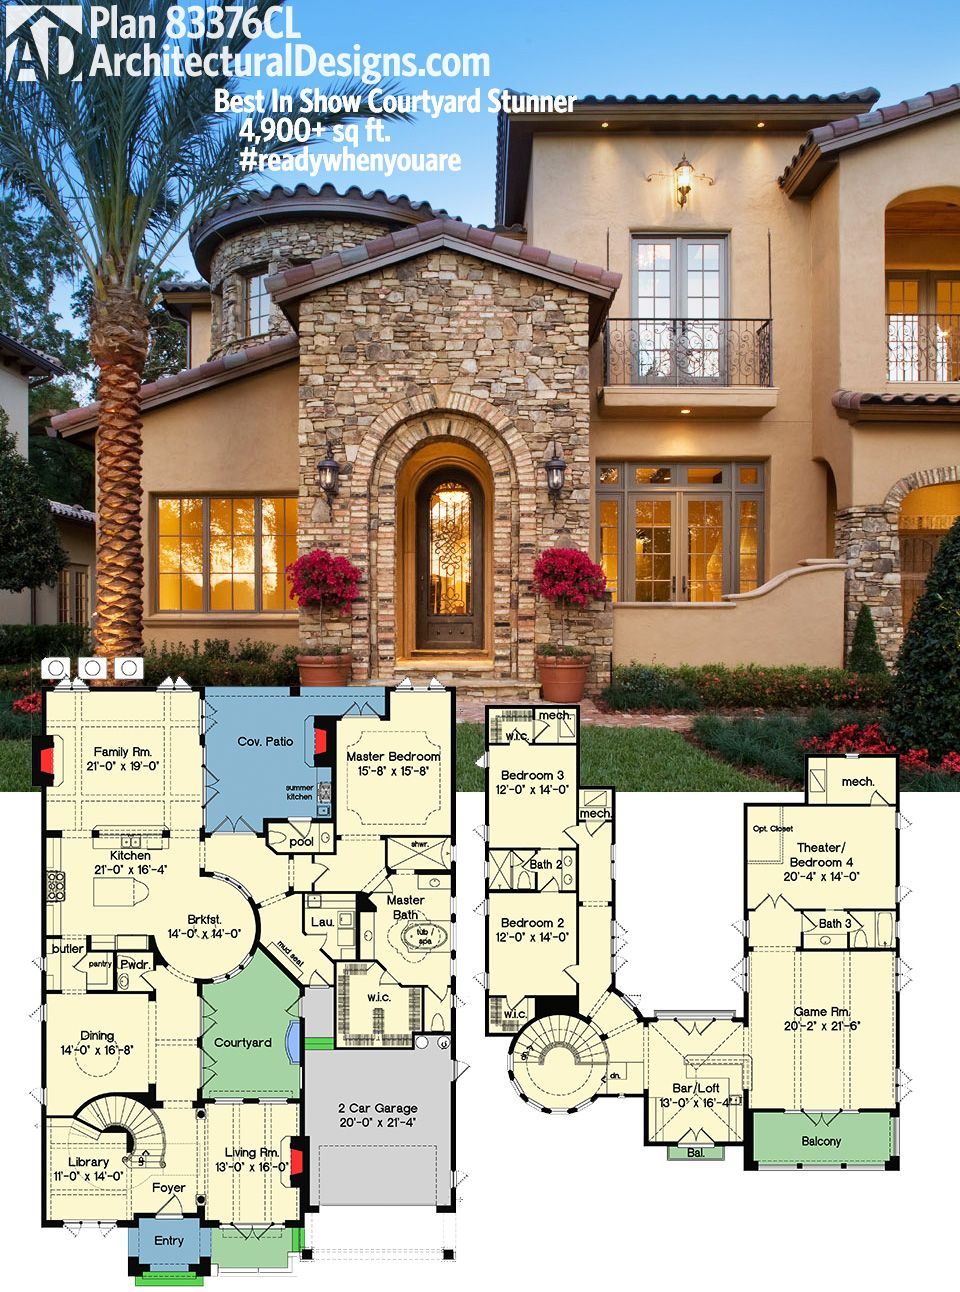 plan 83376cl best in show courtyard stunner luxury plan 83376cl best in show courtyard stunner